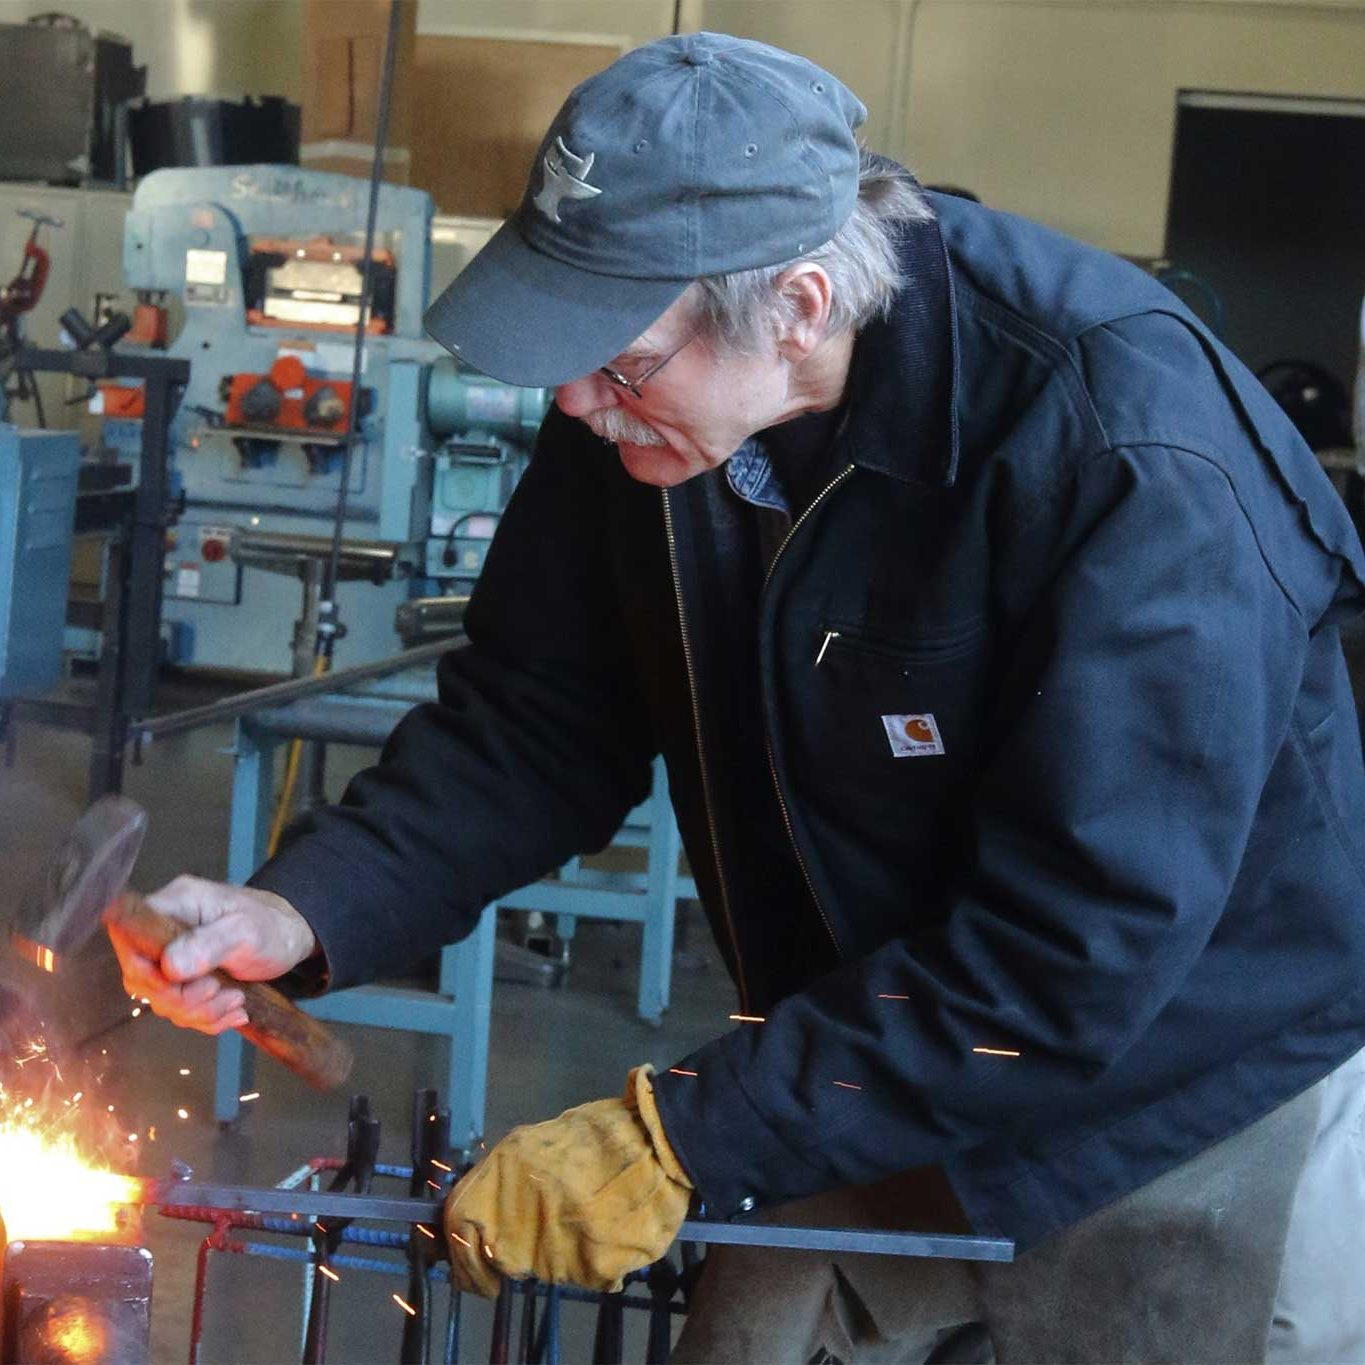 Manufacturing, Welding and Engineering. CTEC Career Technical Education Center through Salem-Keizer Public Schools prepares students for high-skill, high-wage, and high-demand careers, while developing the professional skills, technical knowledge, academic foundation and real-world experience to assure their success upon graduation.